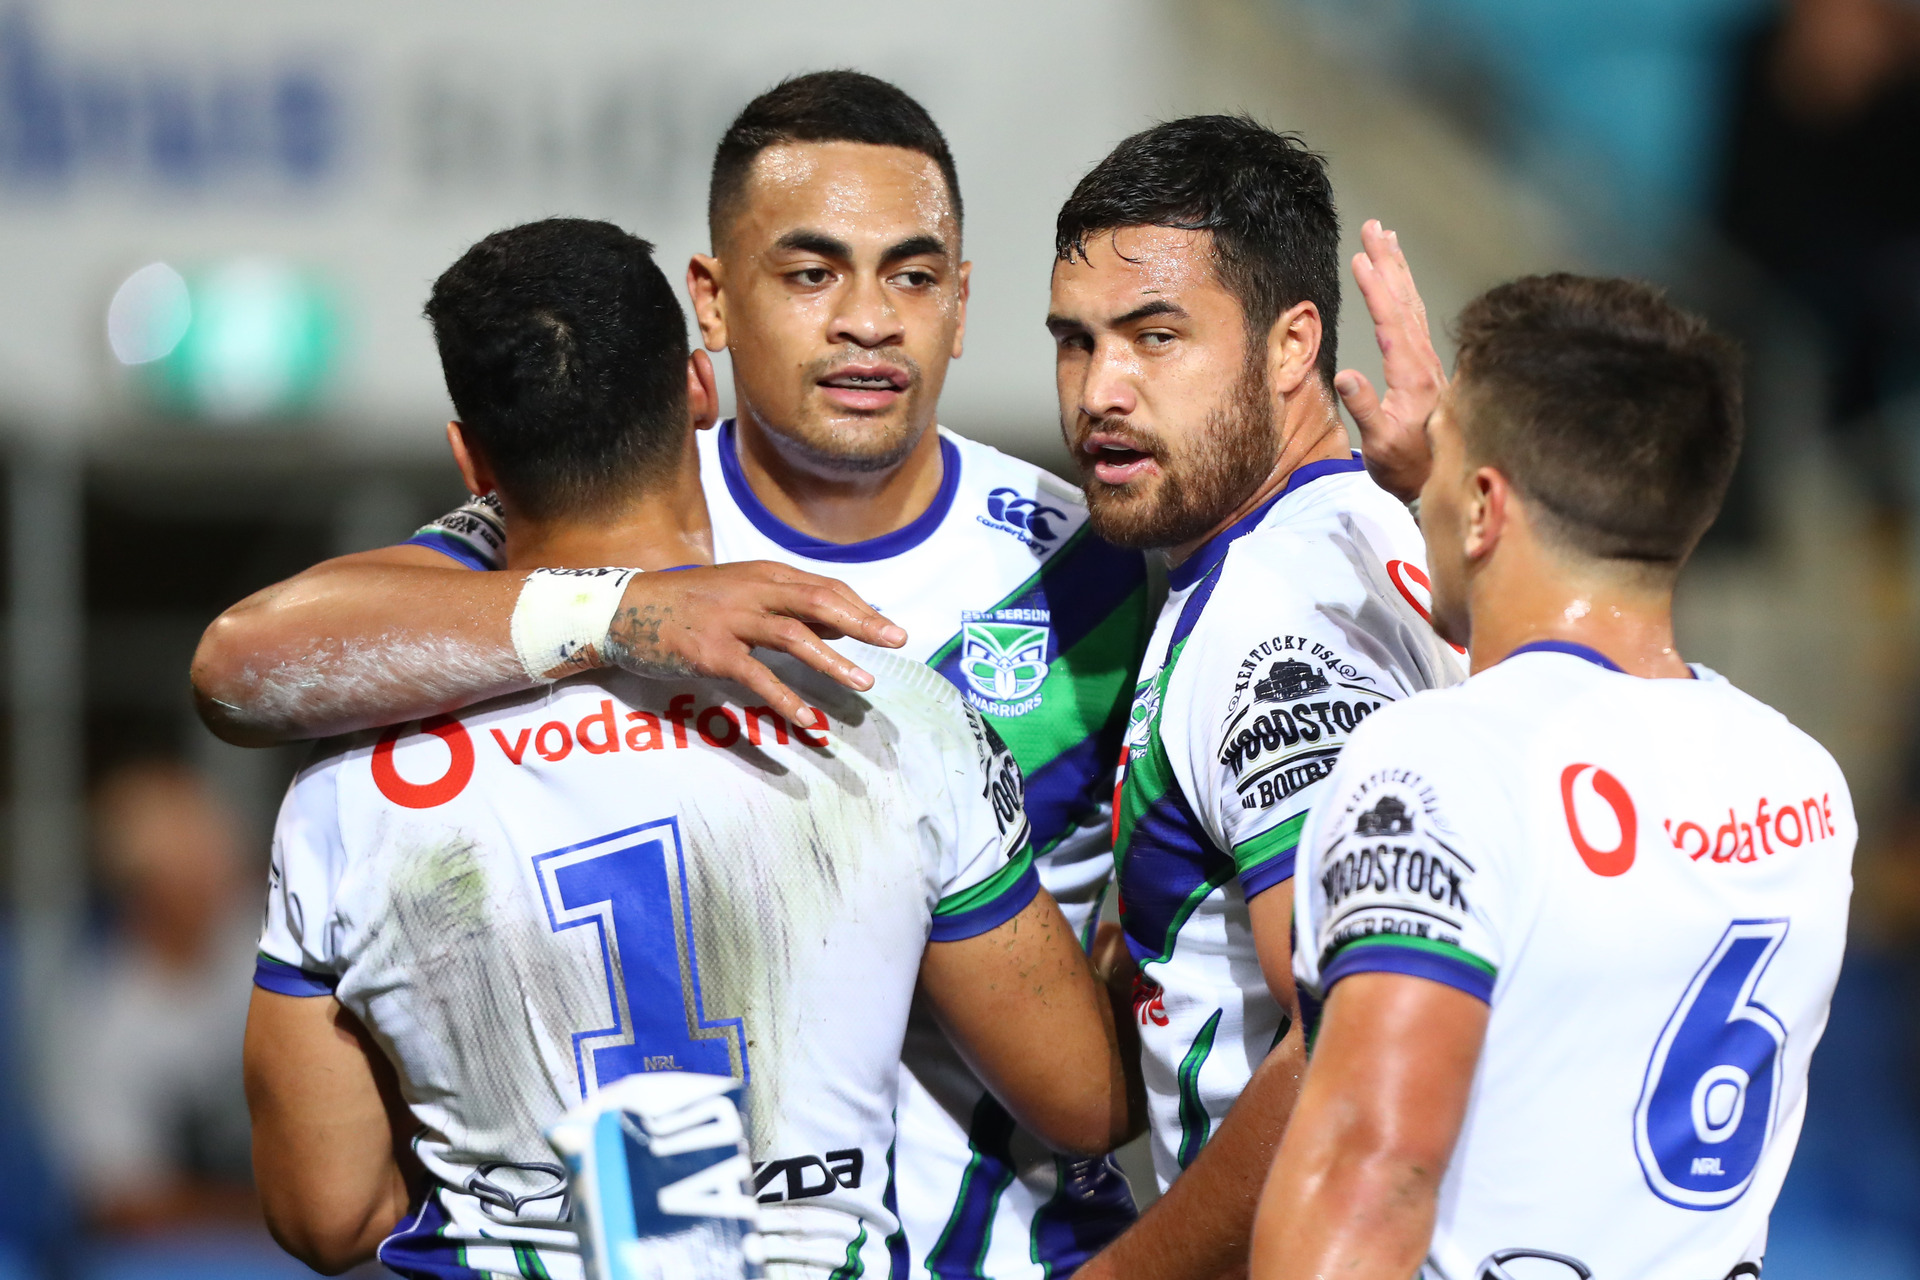 eb2ab1fddf2 Rugby league: New Zealand Warriors hang on to snap NRL winless streak  against Gold Coast Titans